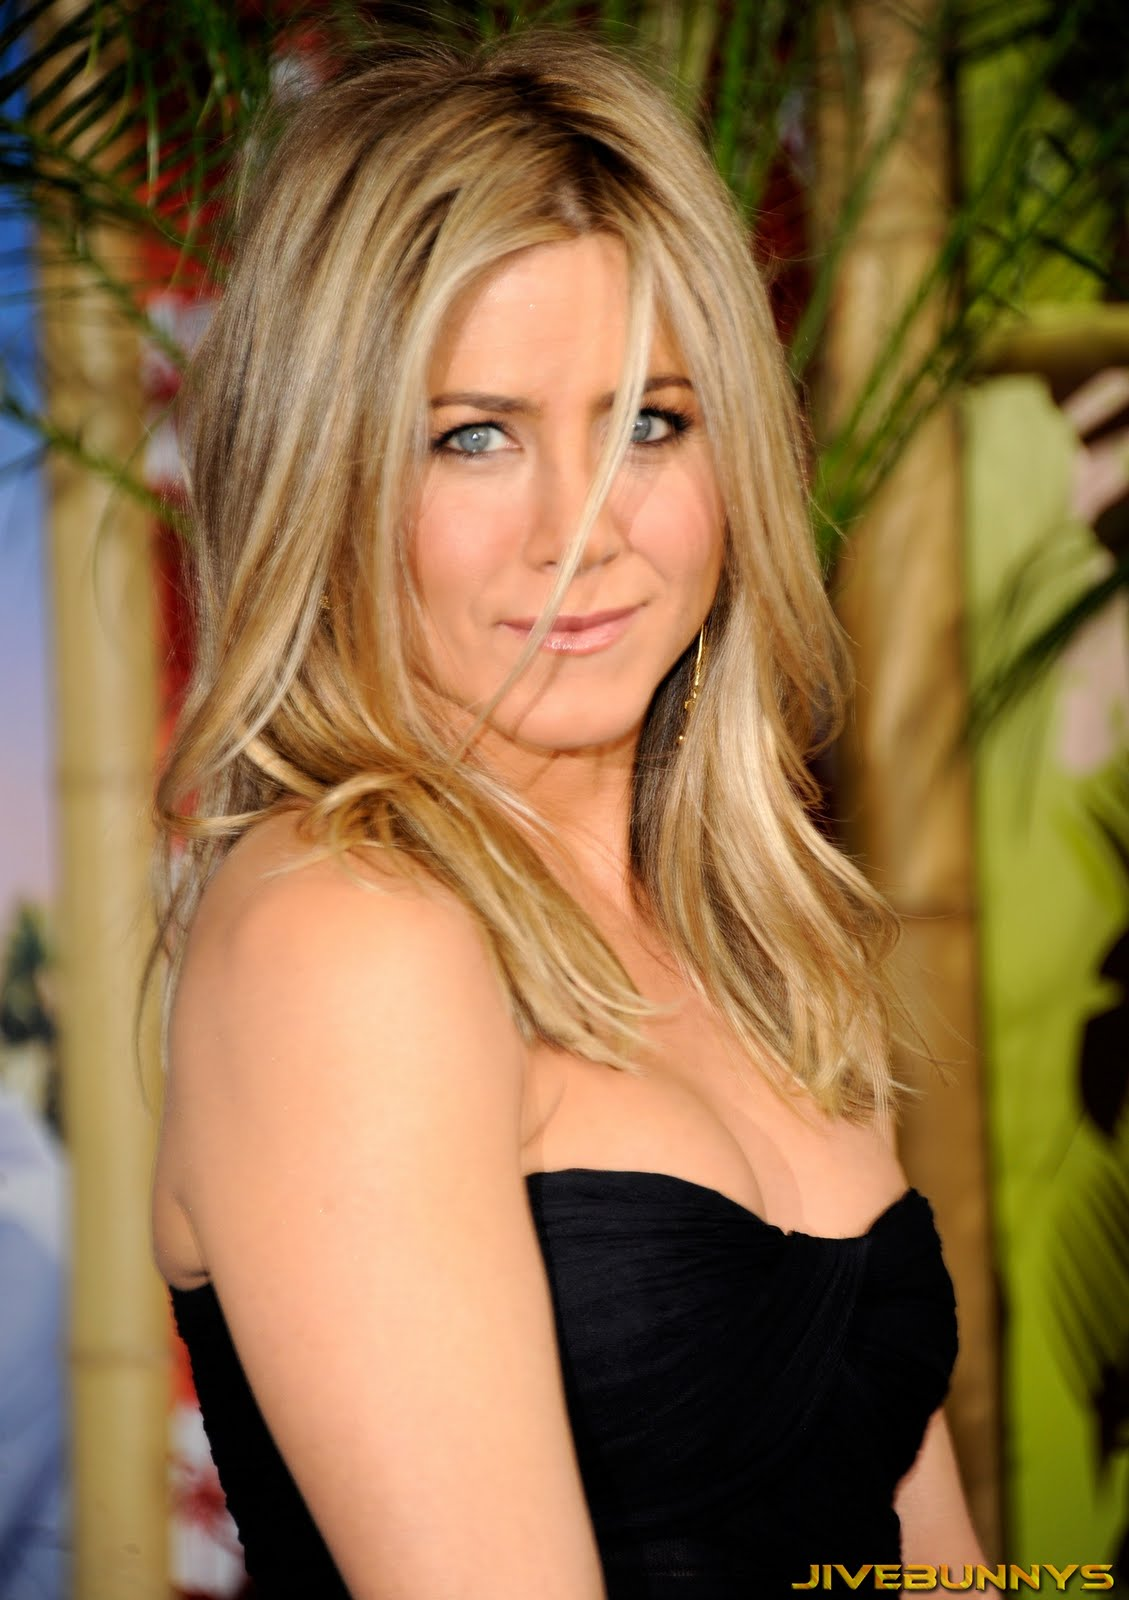 jennifer aniston special pictures 24 film actresses. Black Bedroom Furniture Sets. Home Design Ideas